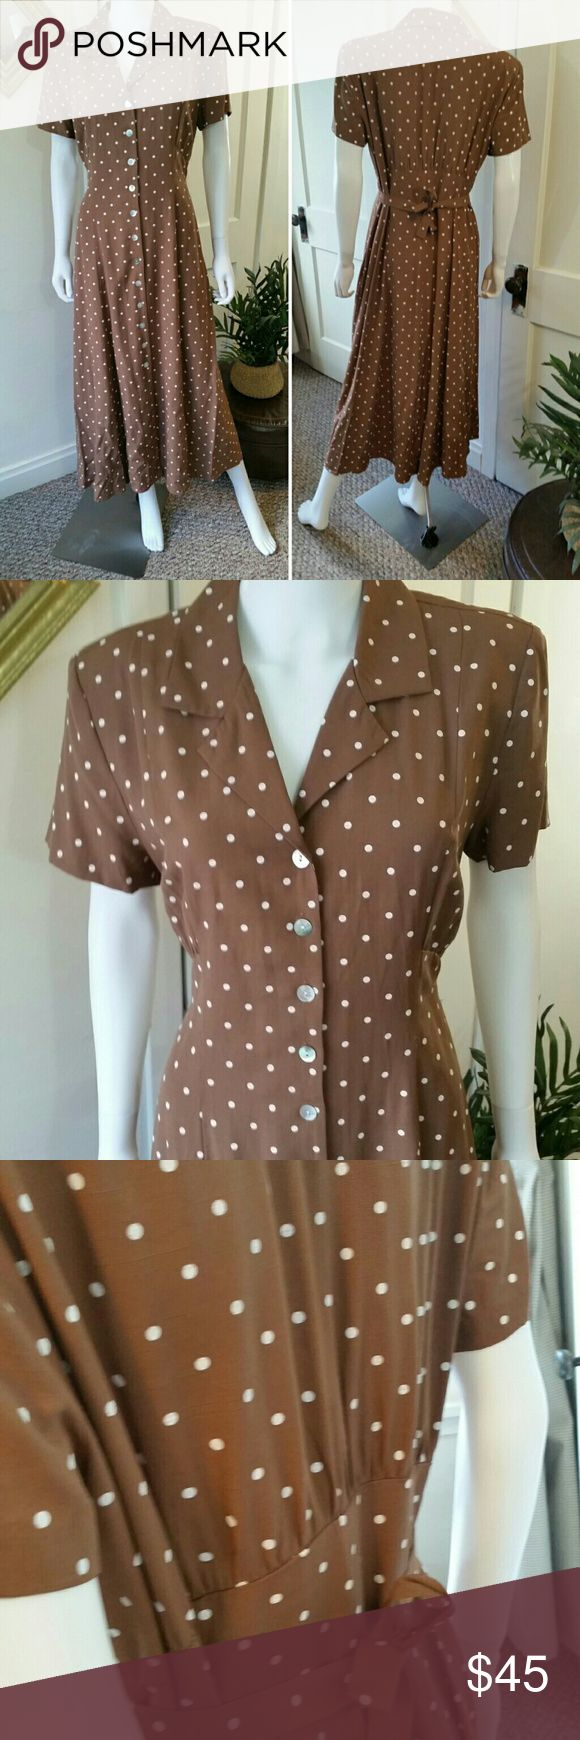 Vintage Polka Dot 40s style Dress - 12 Excellent condition,  cafe color with dainty white Pila dots, mother of pearl buttons, tie back for a fitted look.   Vintage Sheri Martin NY brand. Vintage Dresses Midi